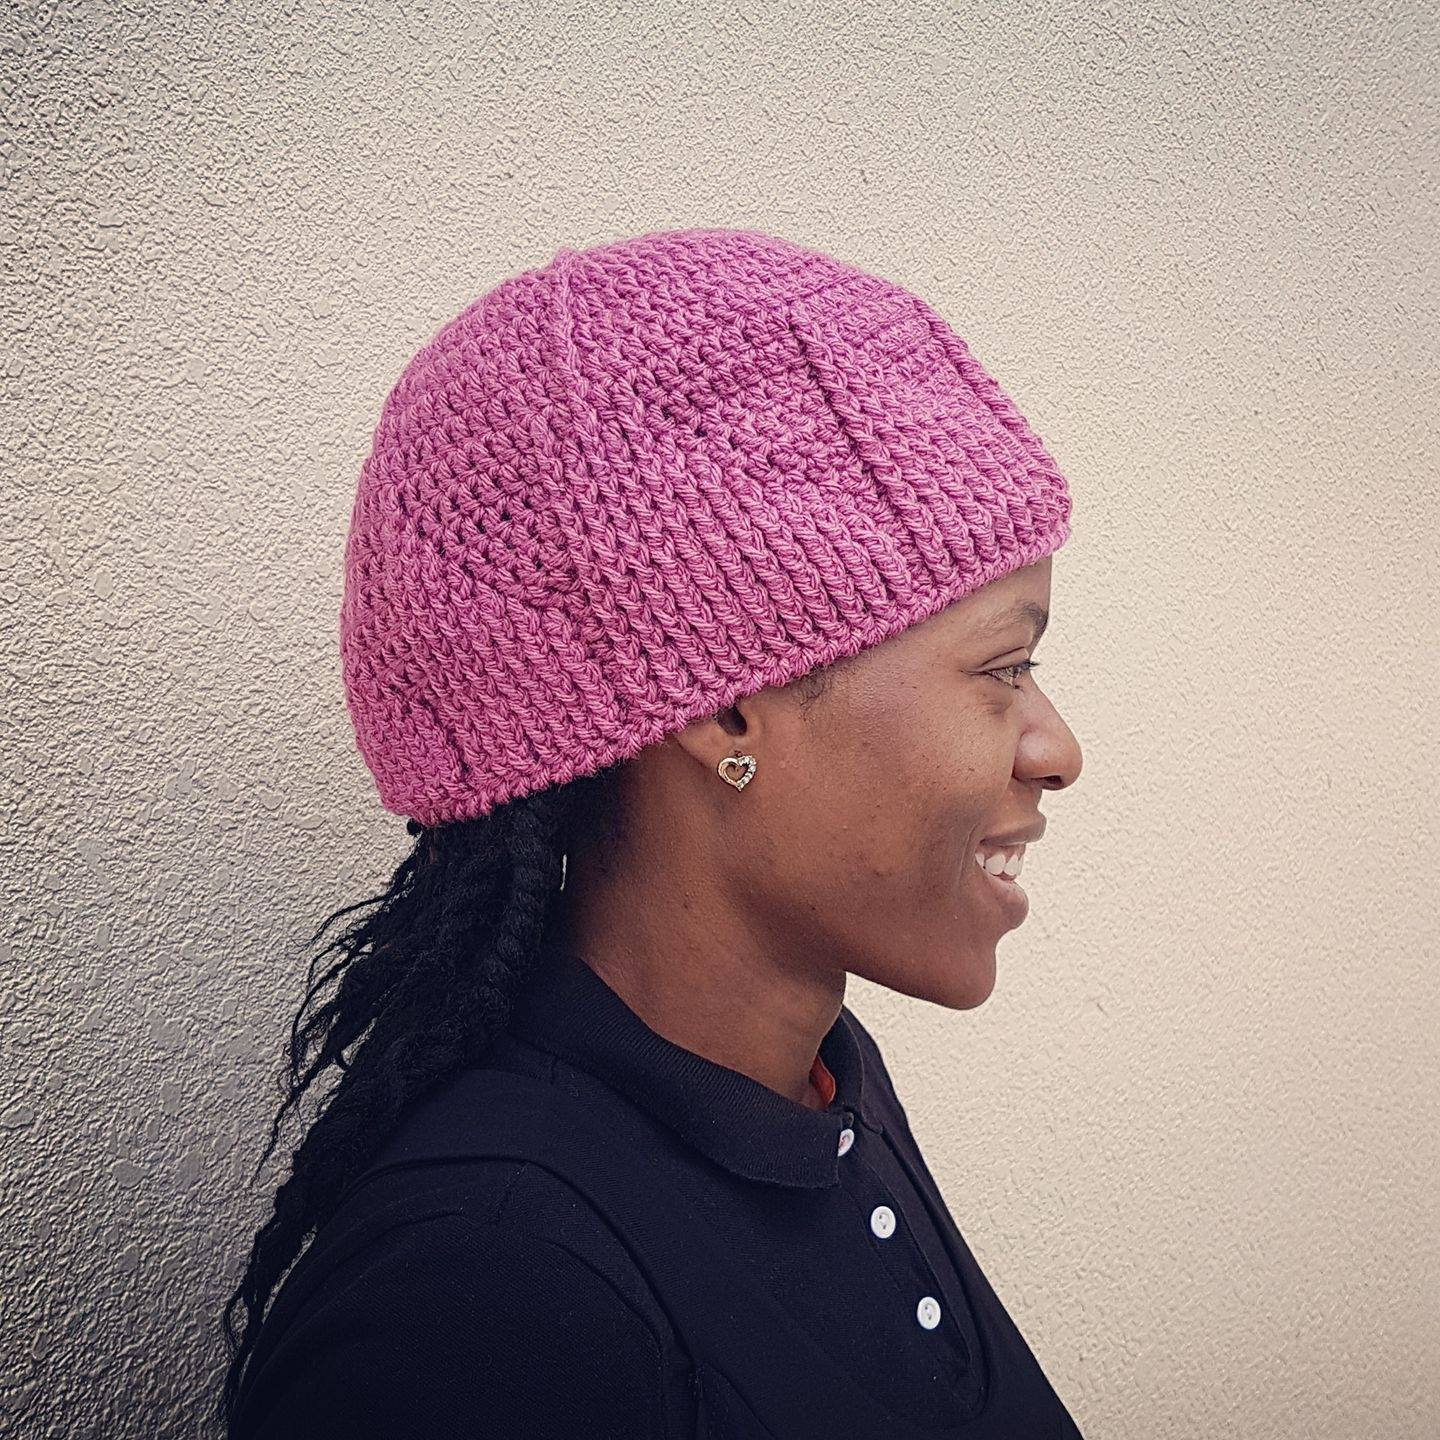 25 minute baby headband- quick and easy crochet pattern